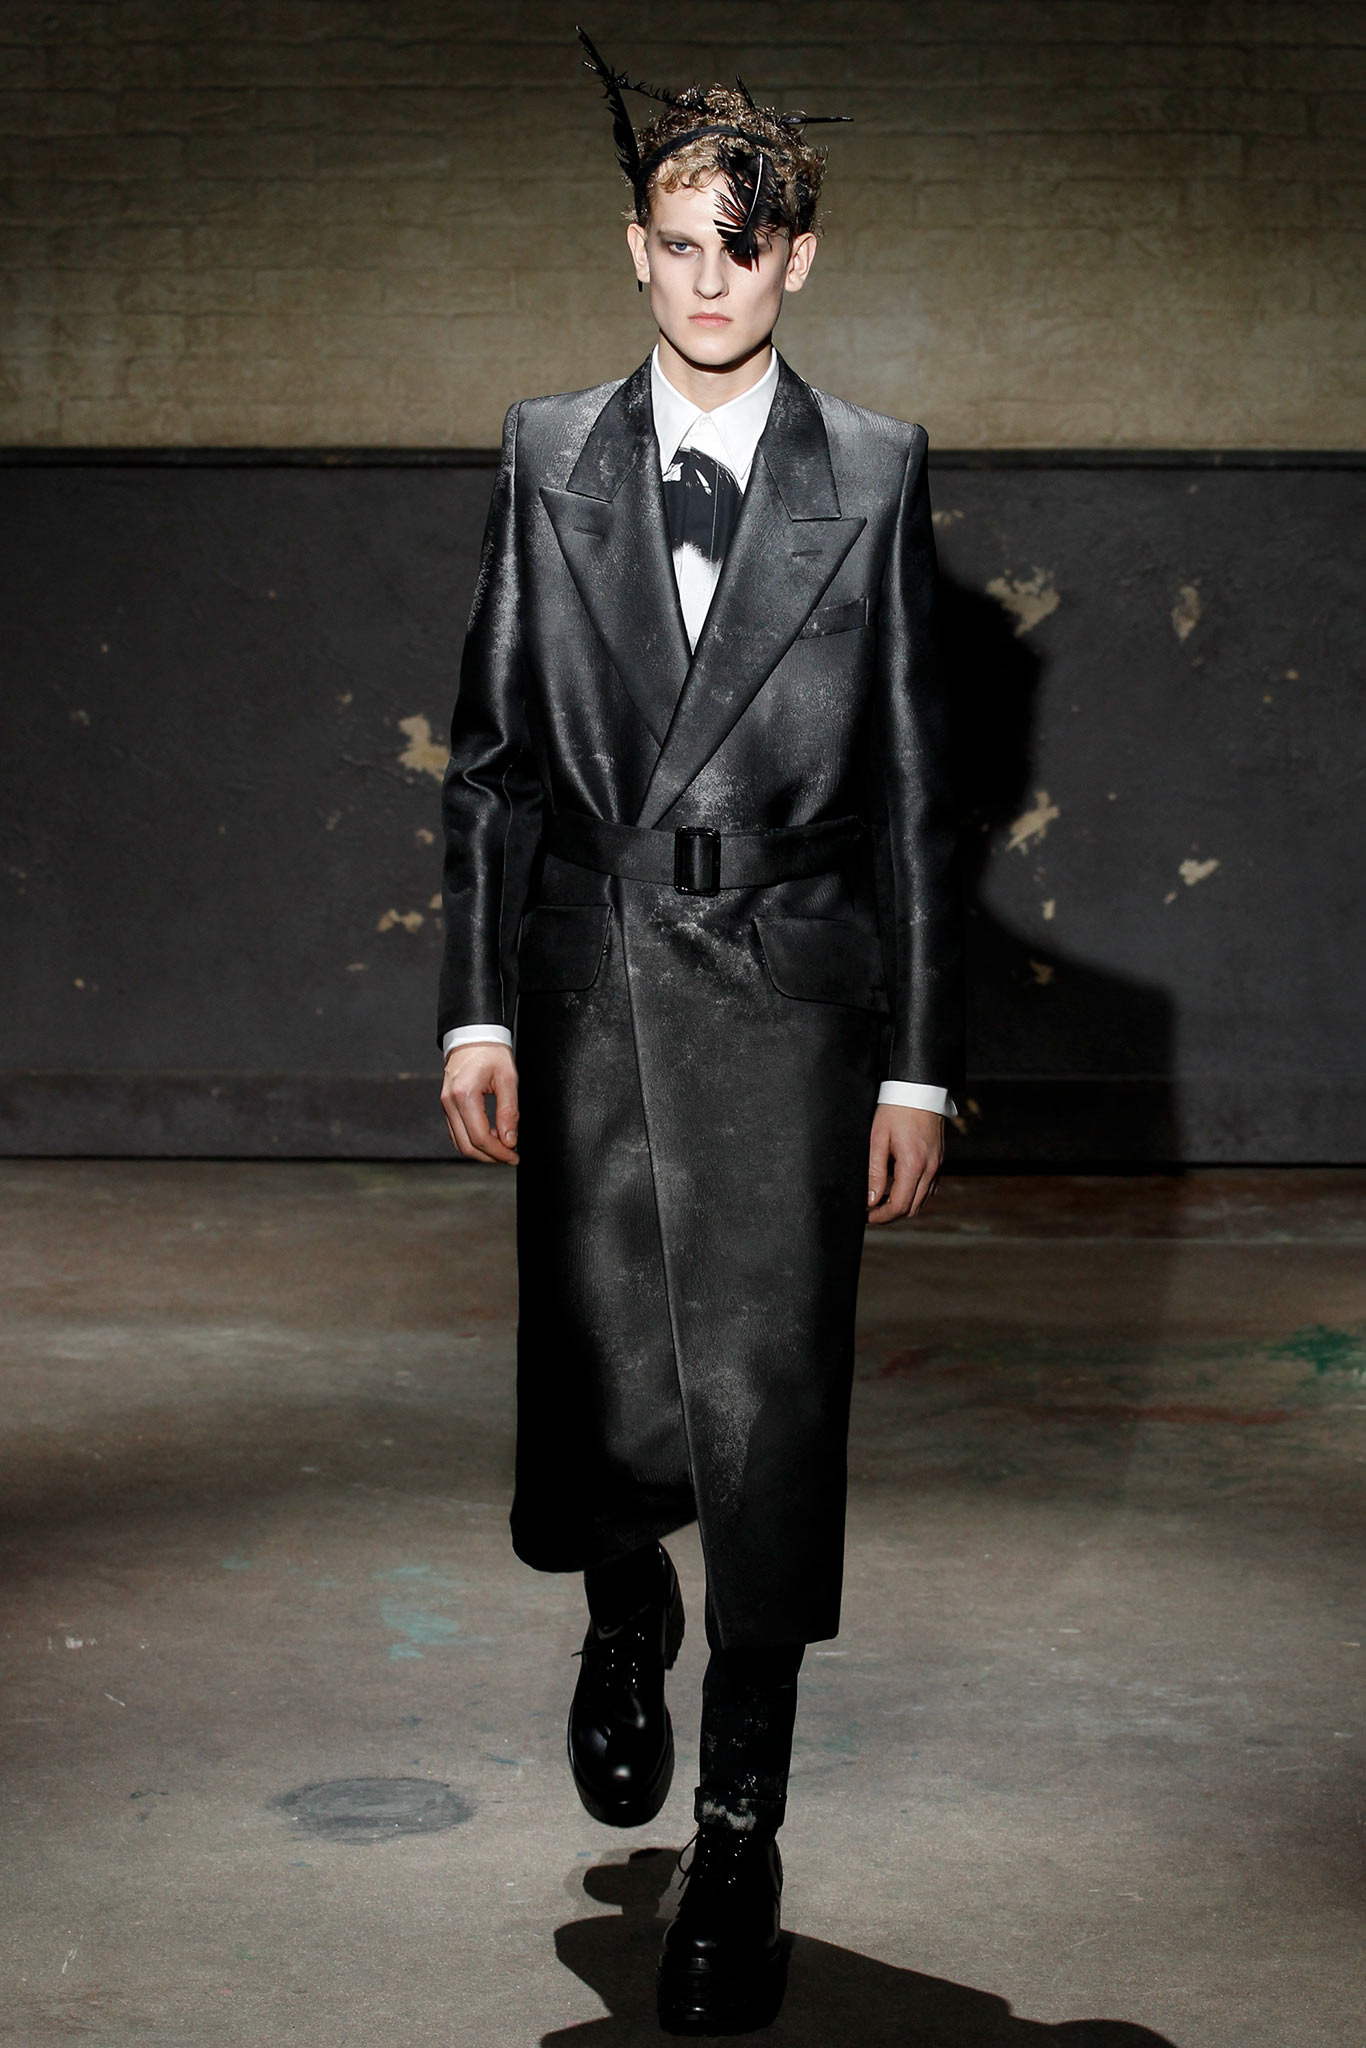 London Collections - Alexander McQueen 2014 AW collection